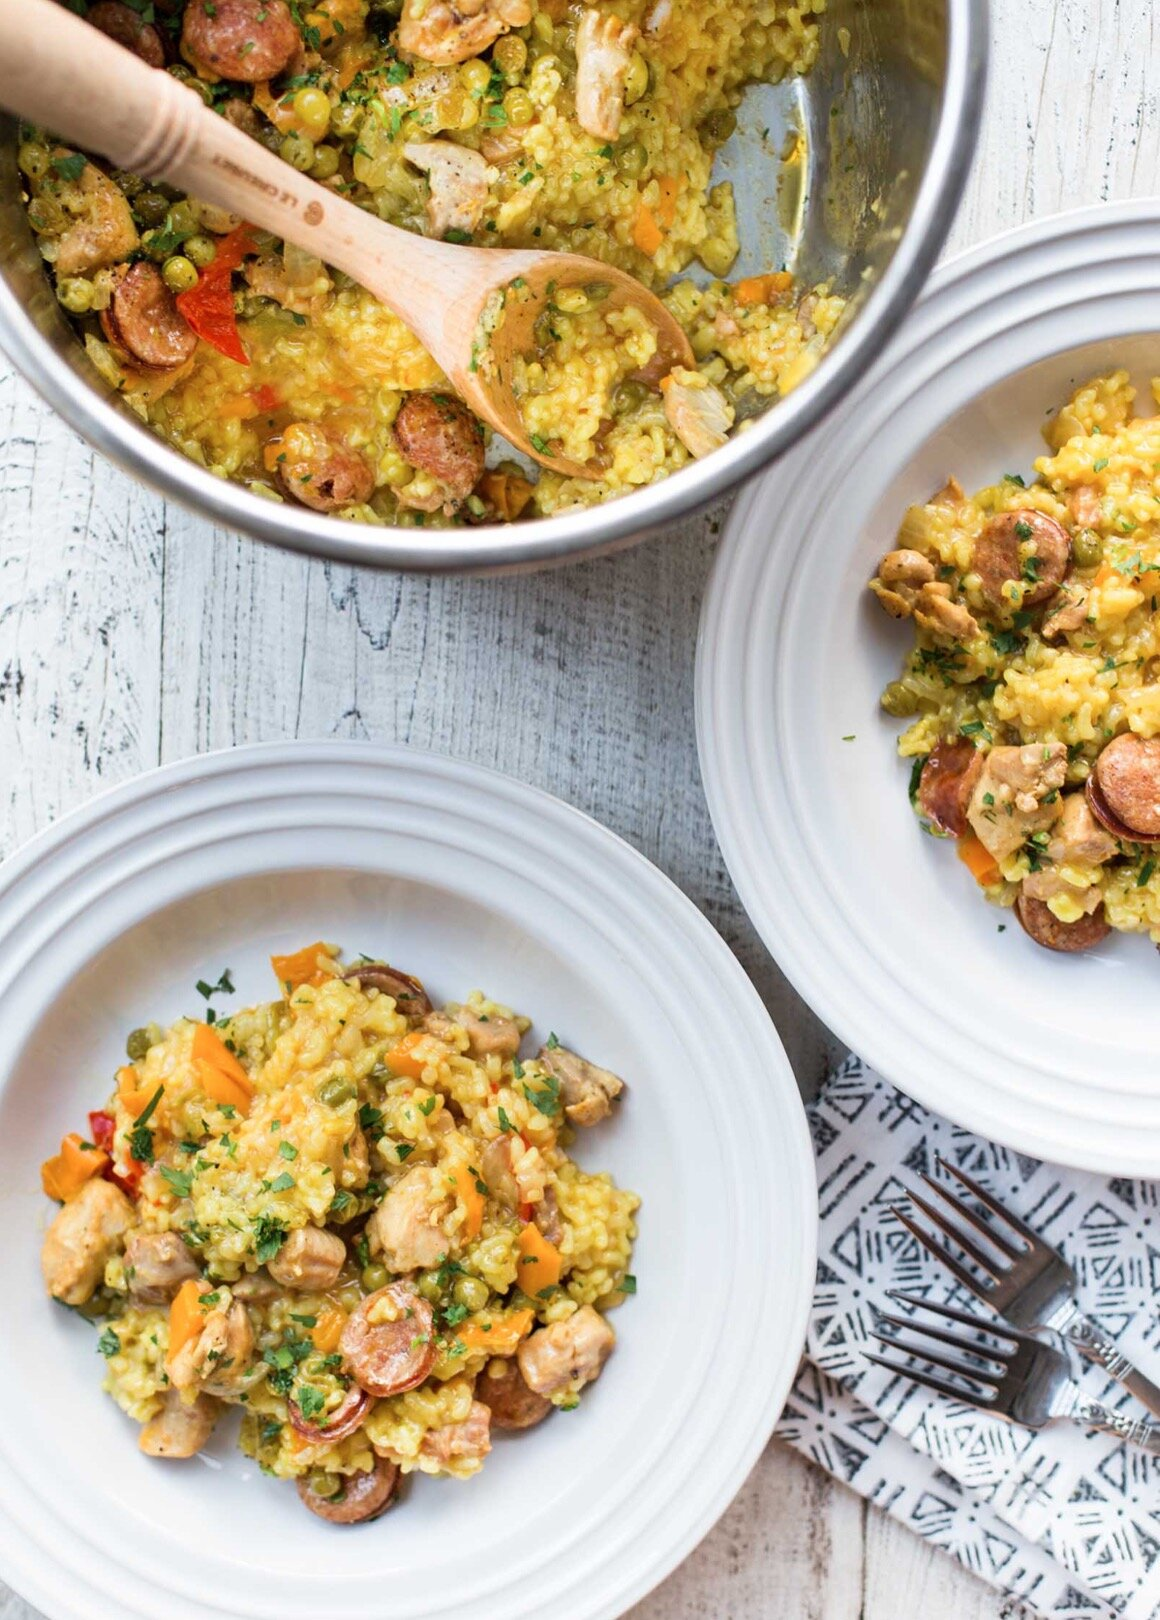 Paella with Chicken and Sausage